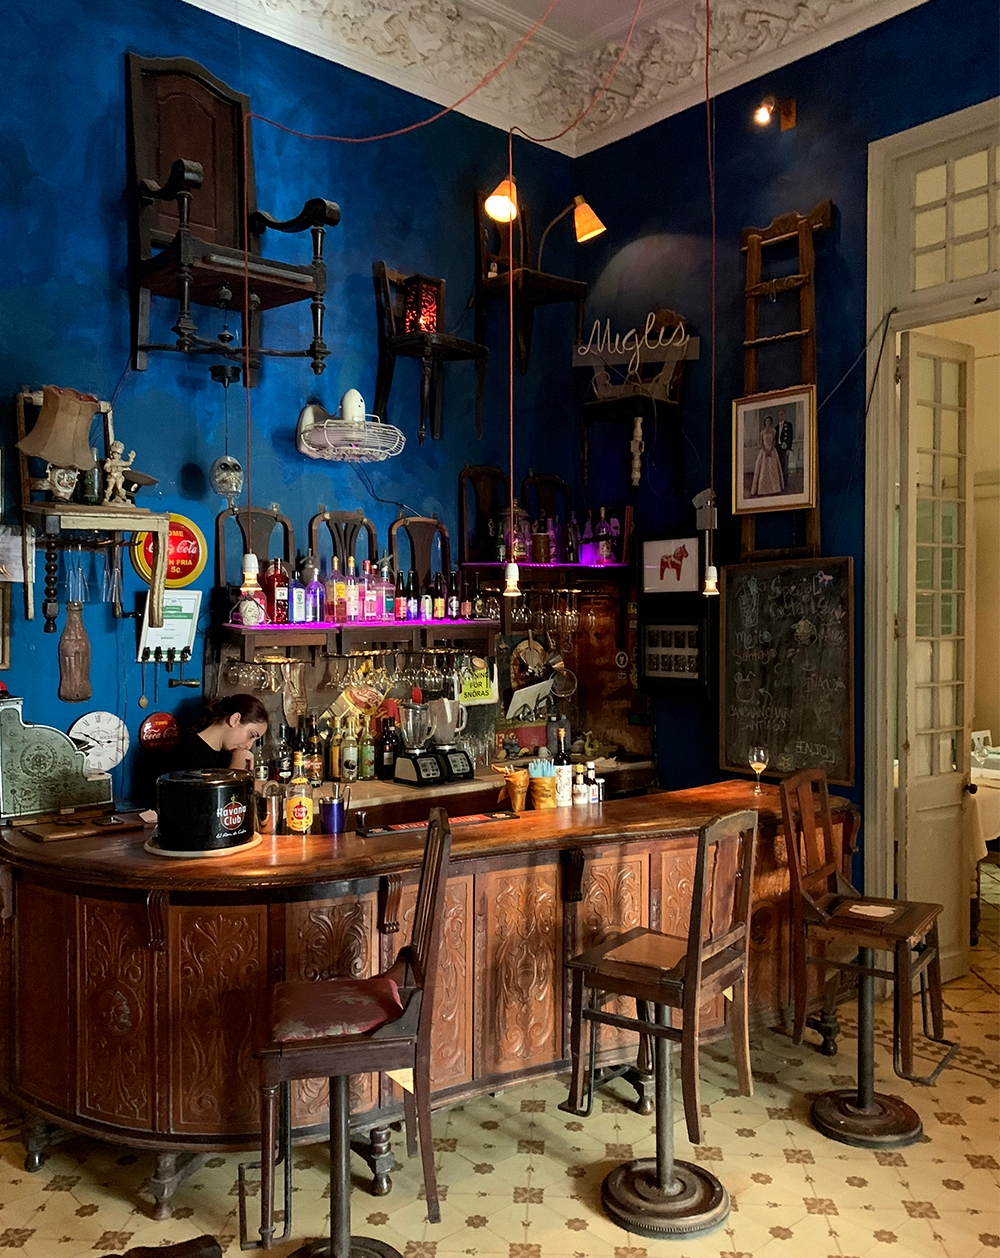 The eclectic interior of restaurant, La Guarida Paladar, sees chairs suspended to royal blue walls, hanging lights and a dark wooden bar complete with alcohol and blenders